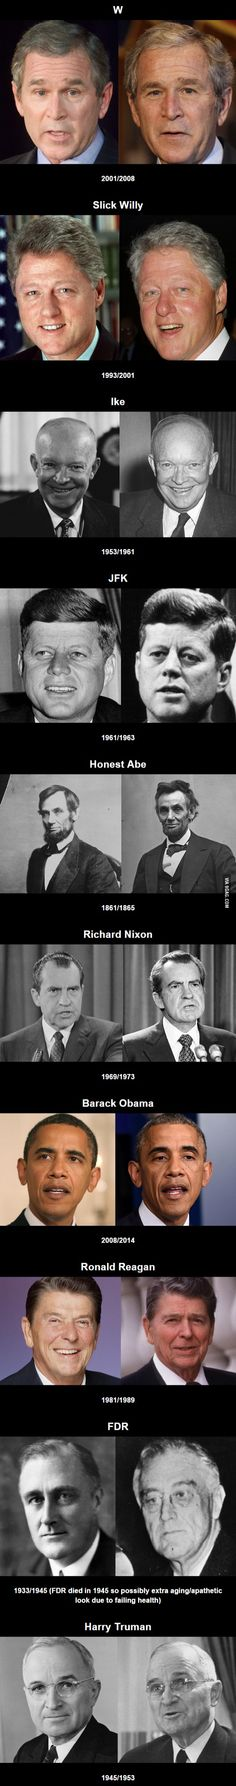 Presidents before and after their term(s)